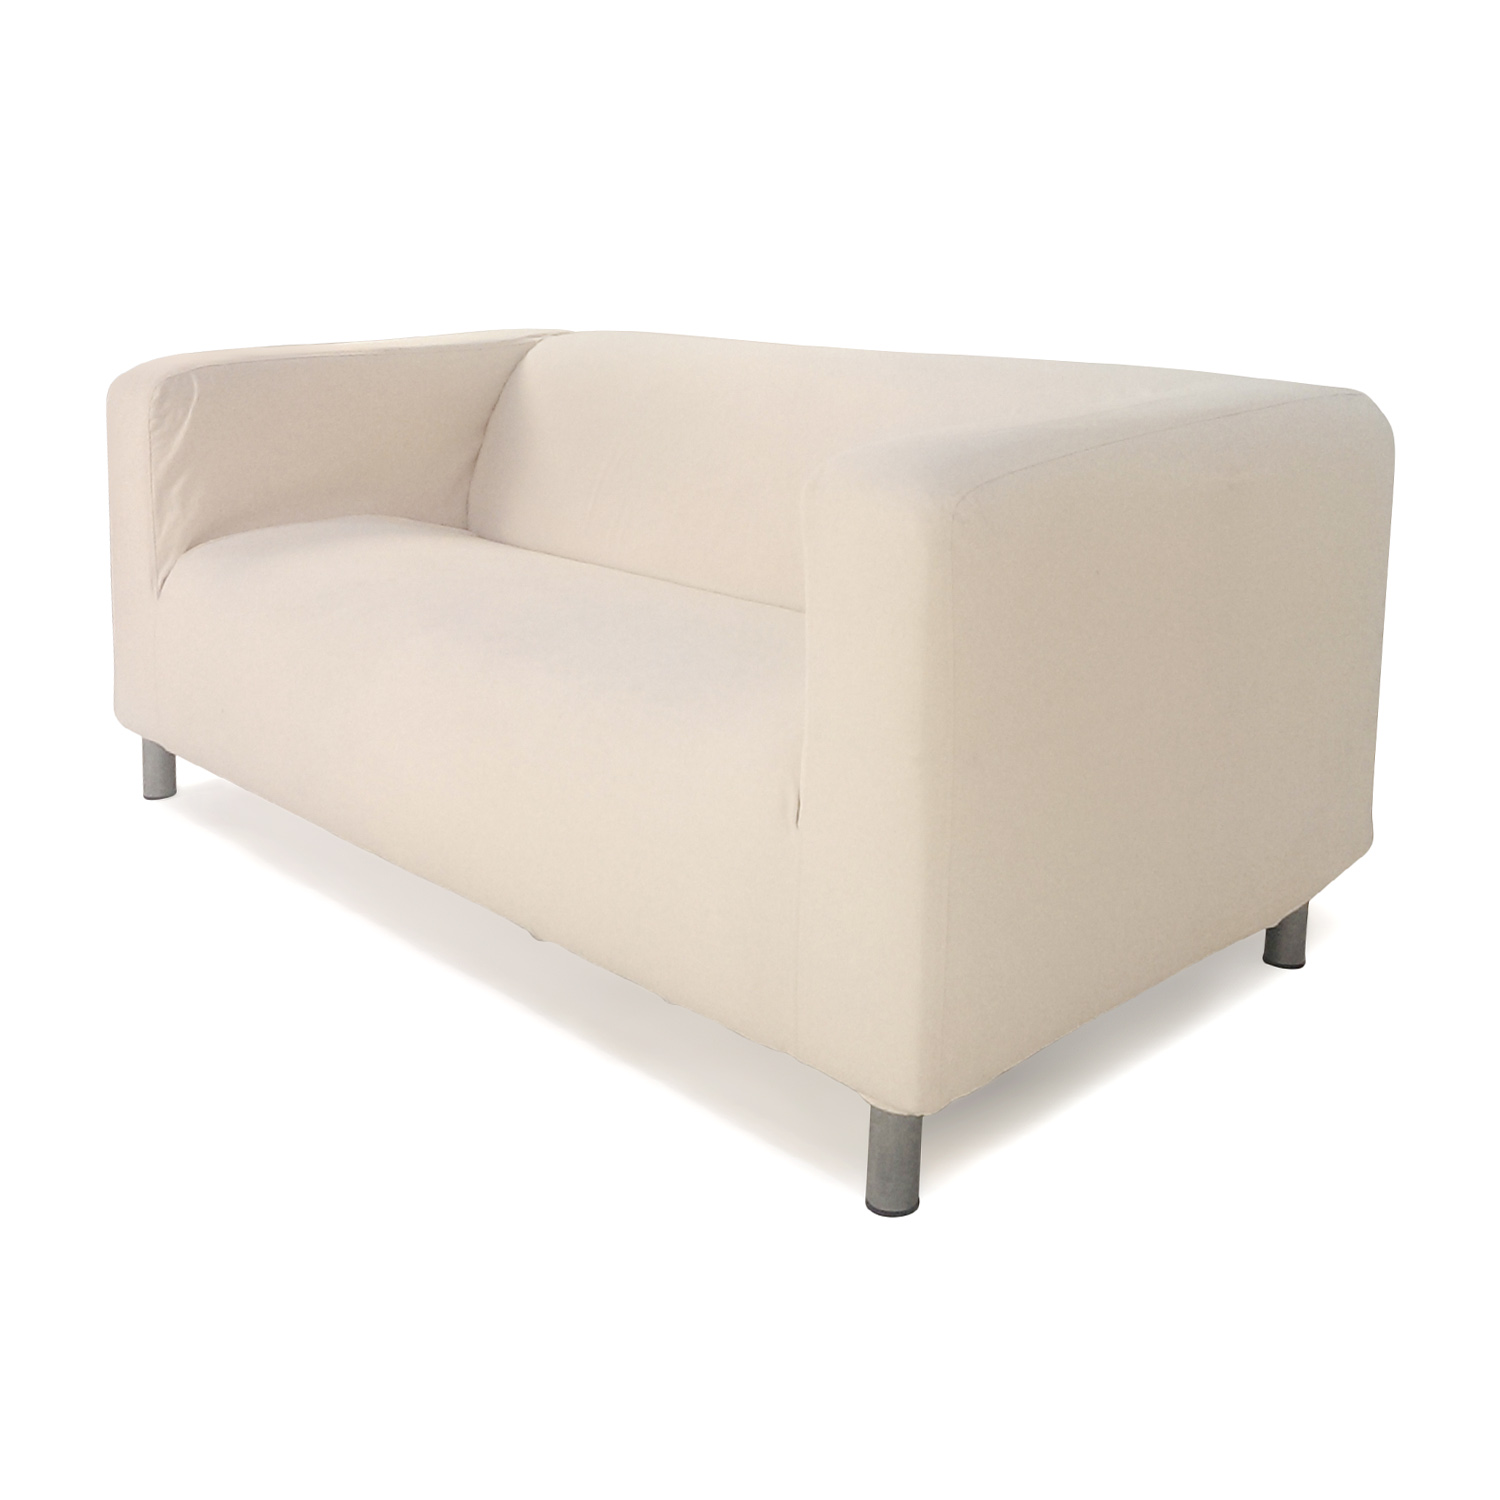 ikea klippan sofa cover red what is the difference between a and couch davenport slipcover leaby yellow